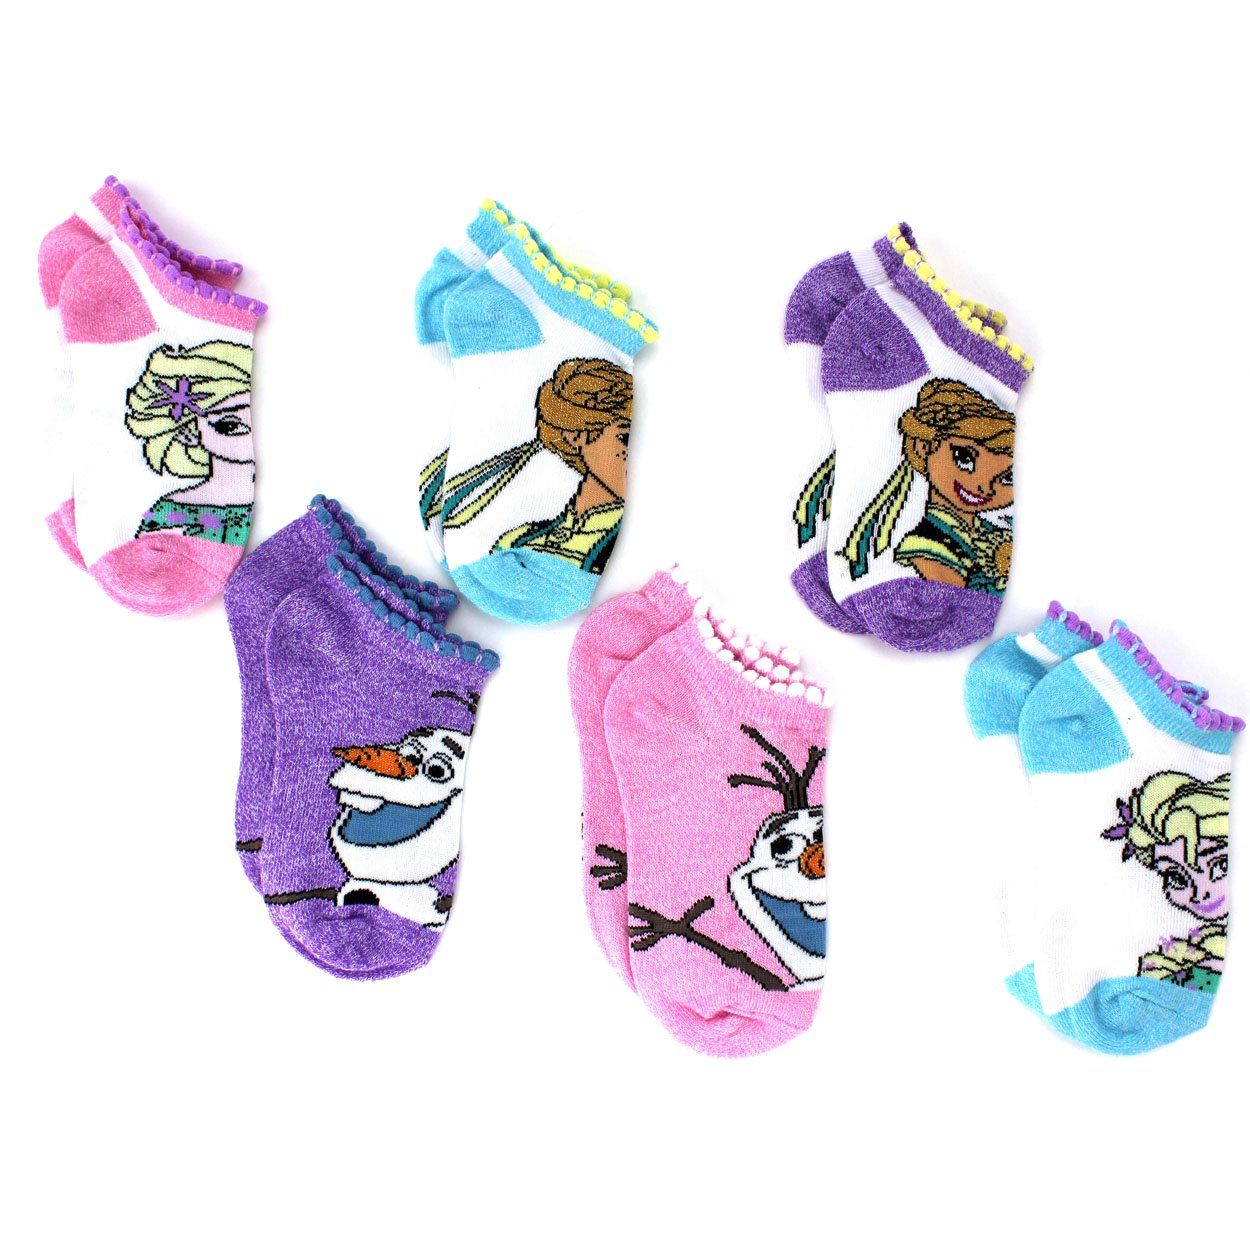 Frozen Anna Elsa Olaf Girls Teen Adult 6 pack Socks